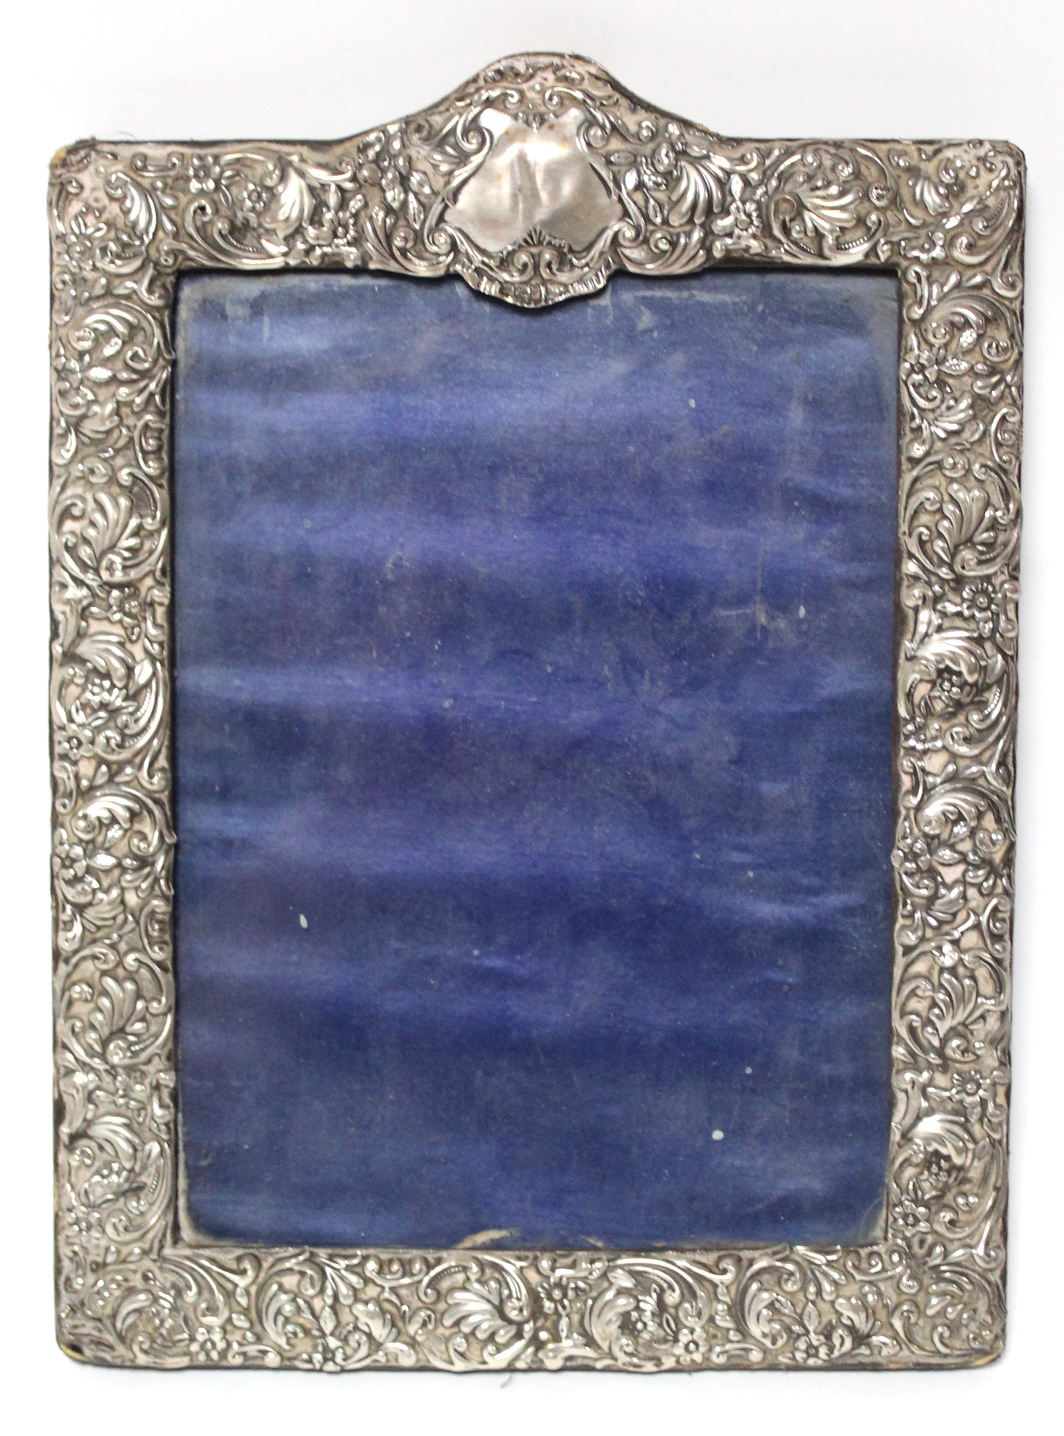 A late Victorian rectangular photograph frame with all-over embossed floral decoration, Sheffield